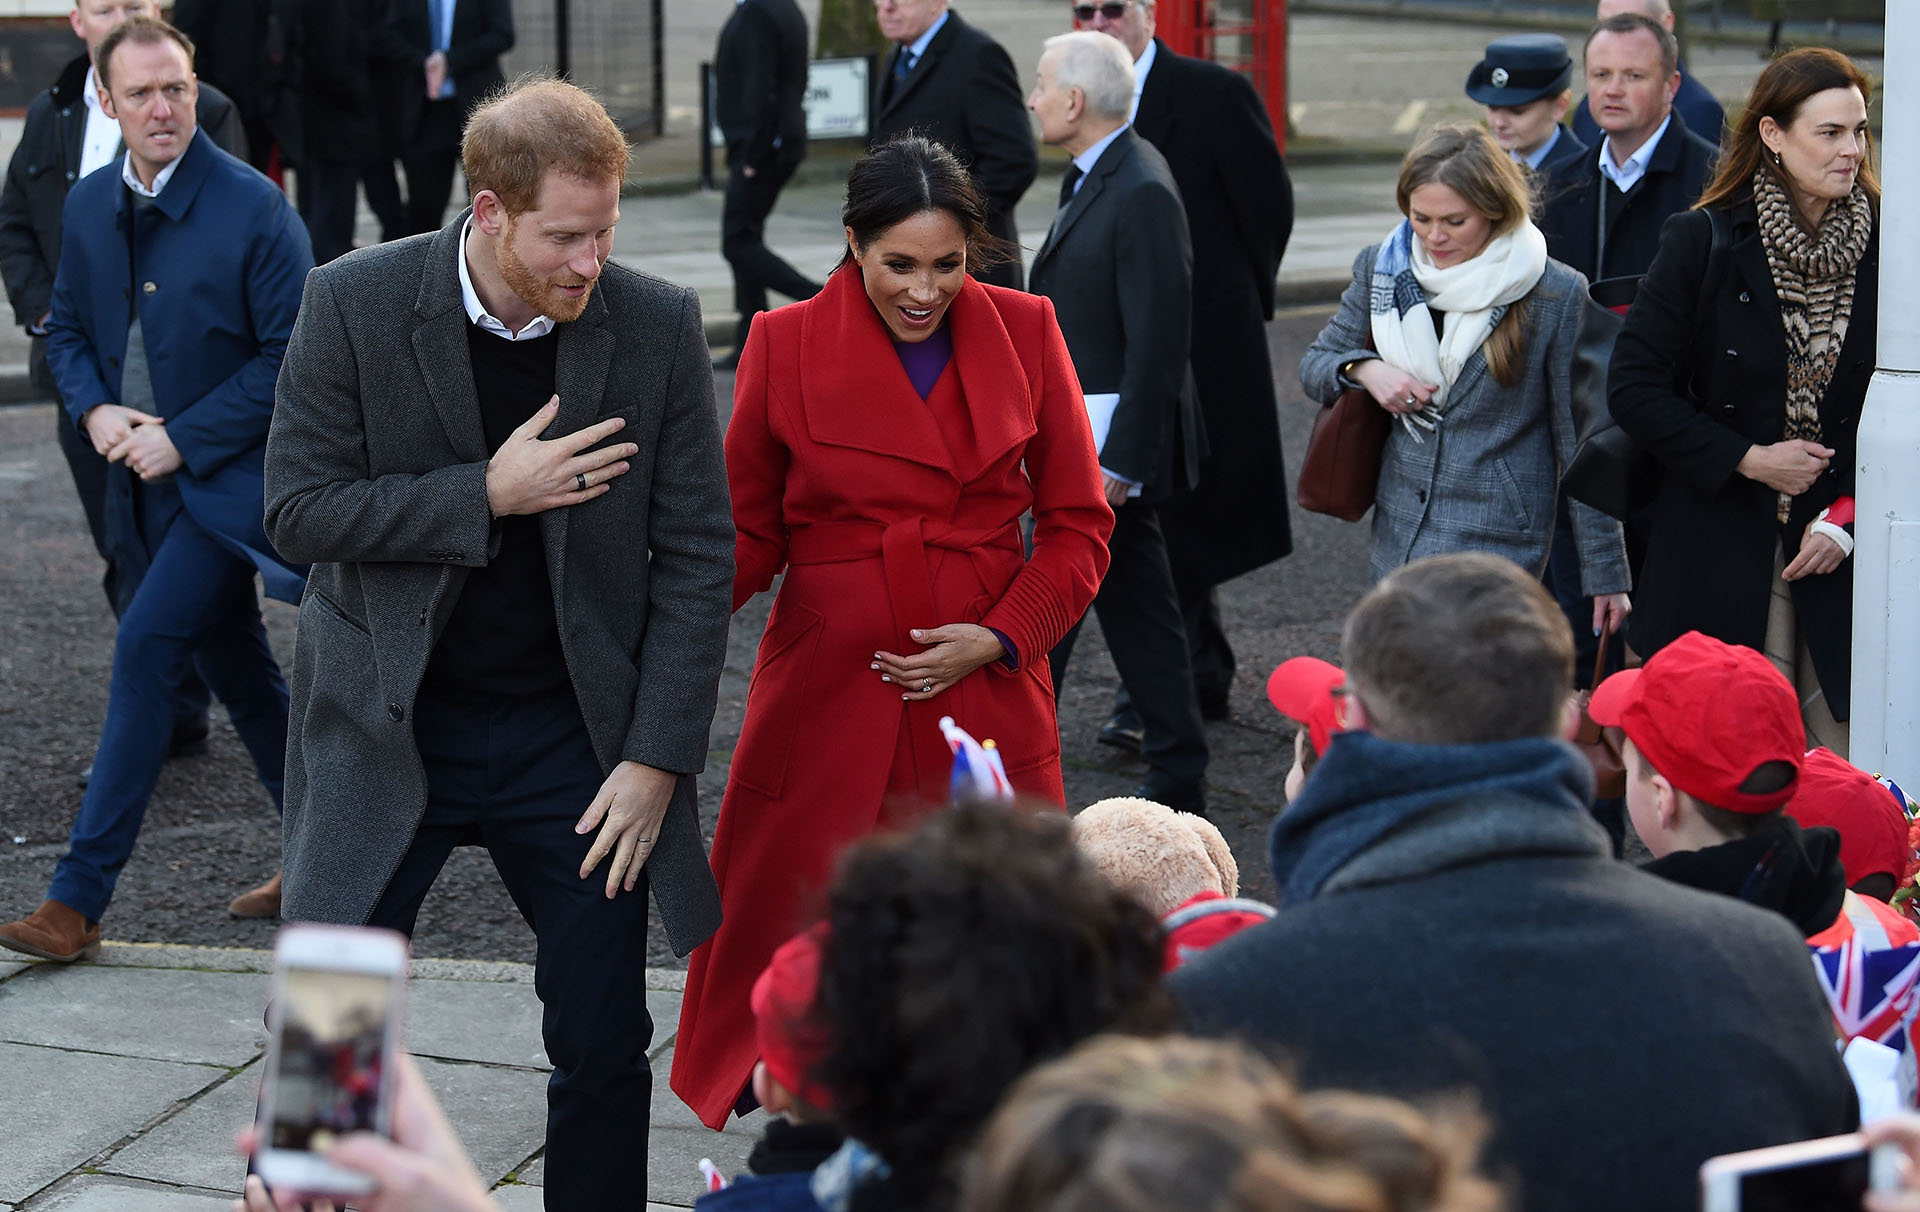 most popular royal name revealed